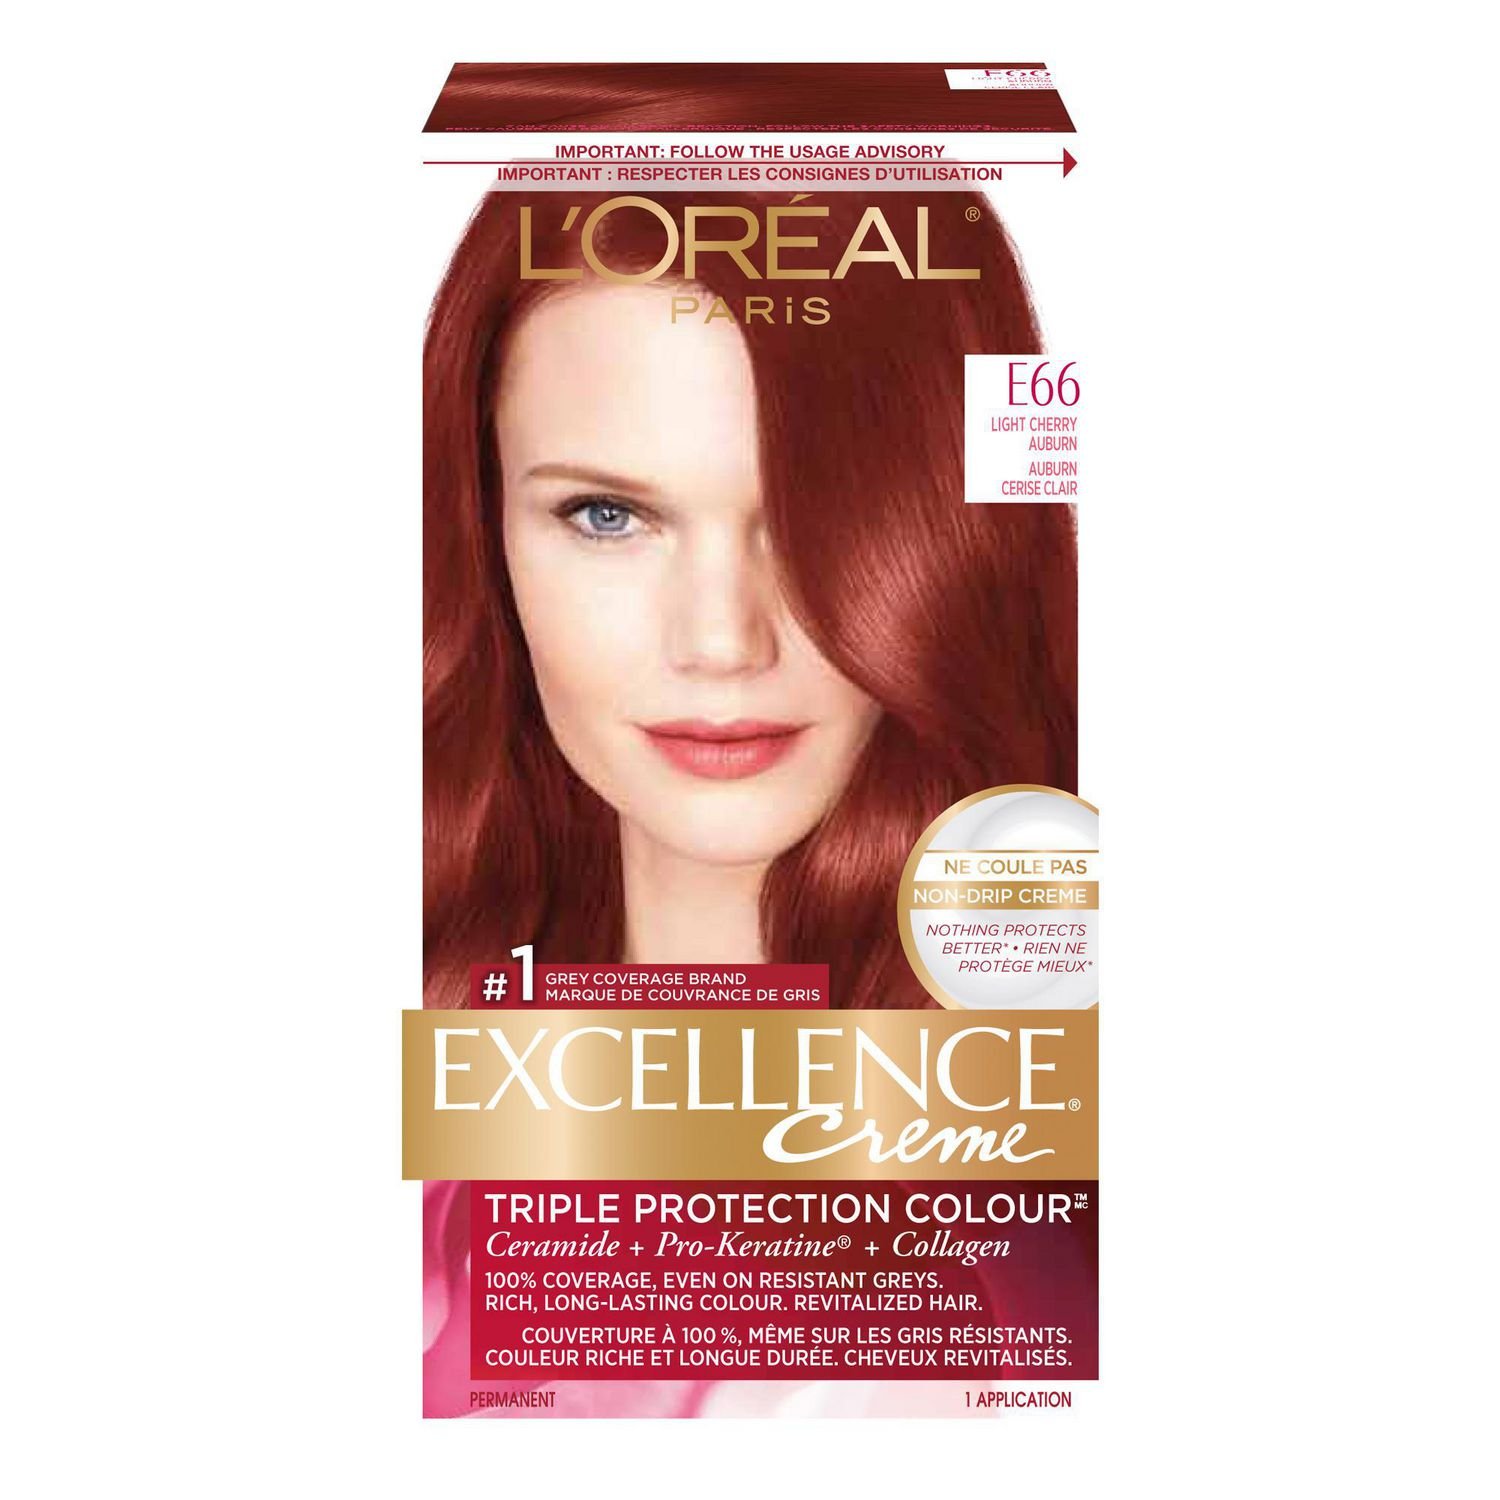 Loreal Paris Excellence Crme Triple Protection Colour Permanent